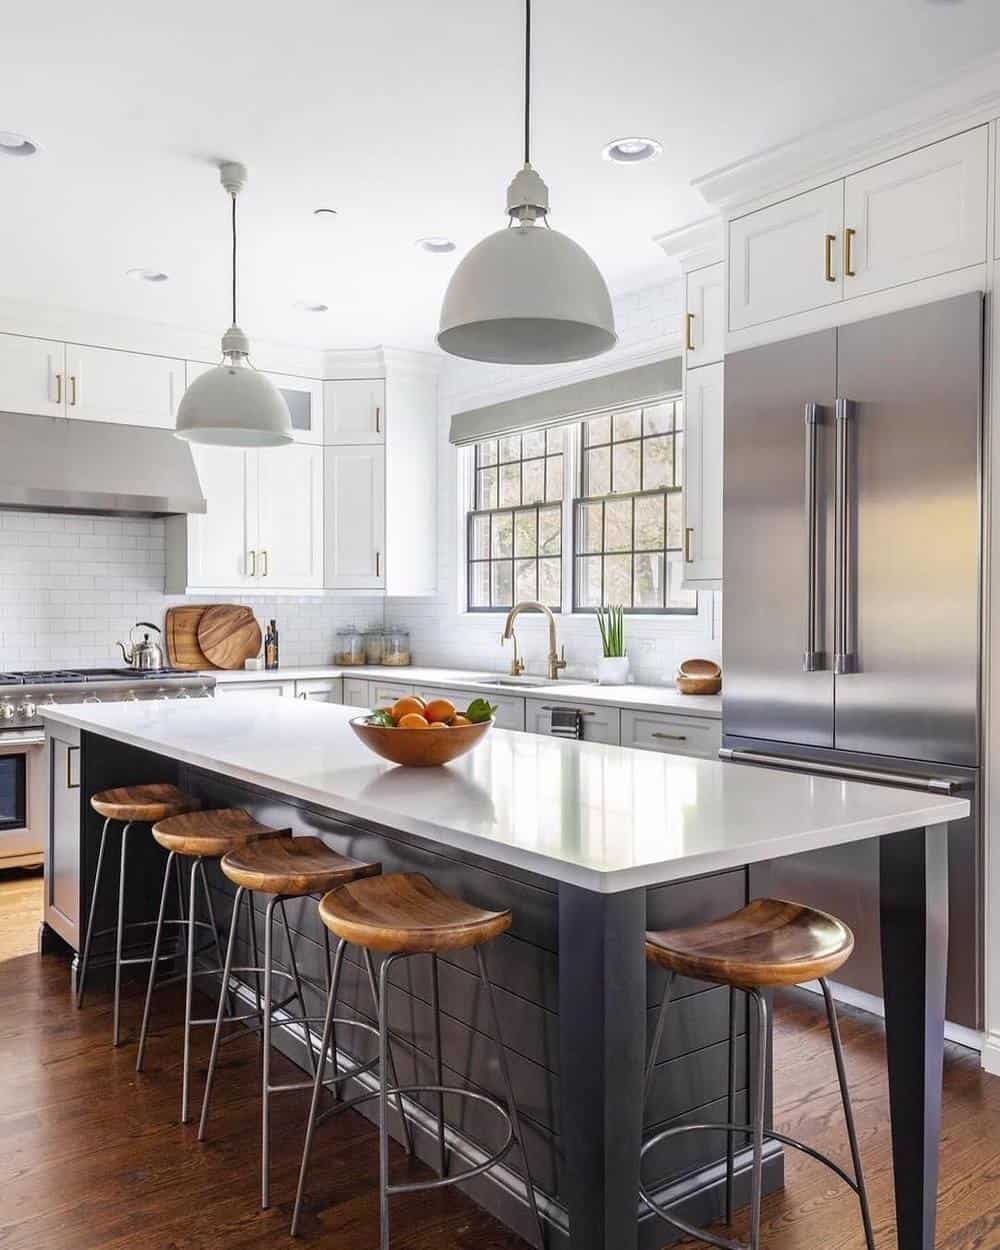 Great Kitchen Island Ideas For Your Inspiration - White Island With Glossy Top